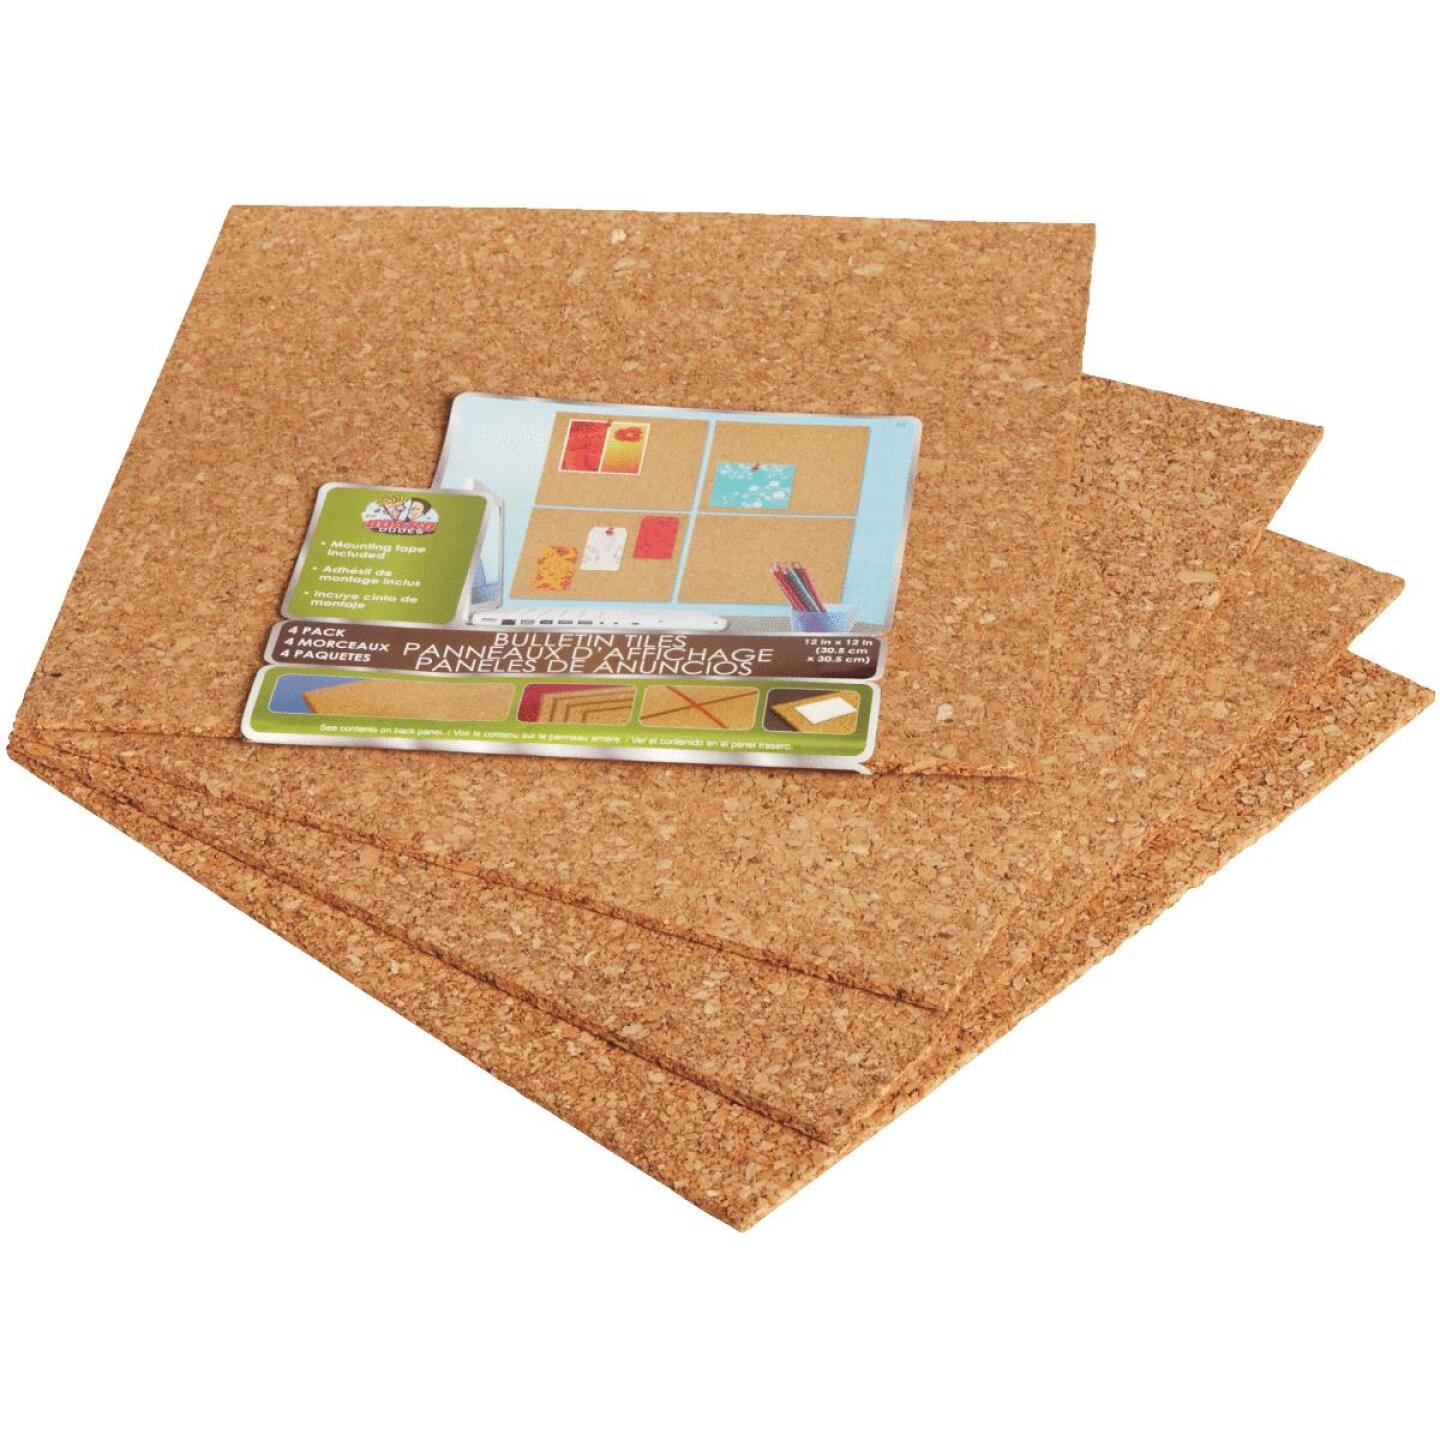 Board Dudes 12 In. x 12 In. Light Cork Tiles (4 Count) Image 4